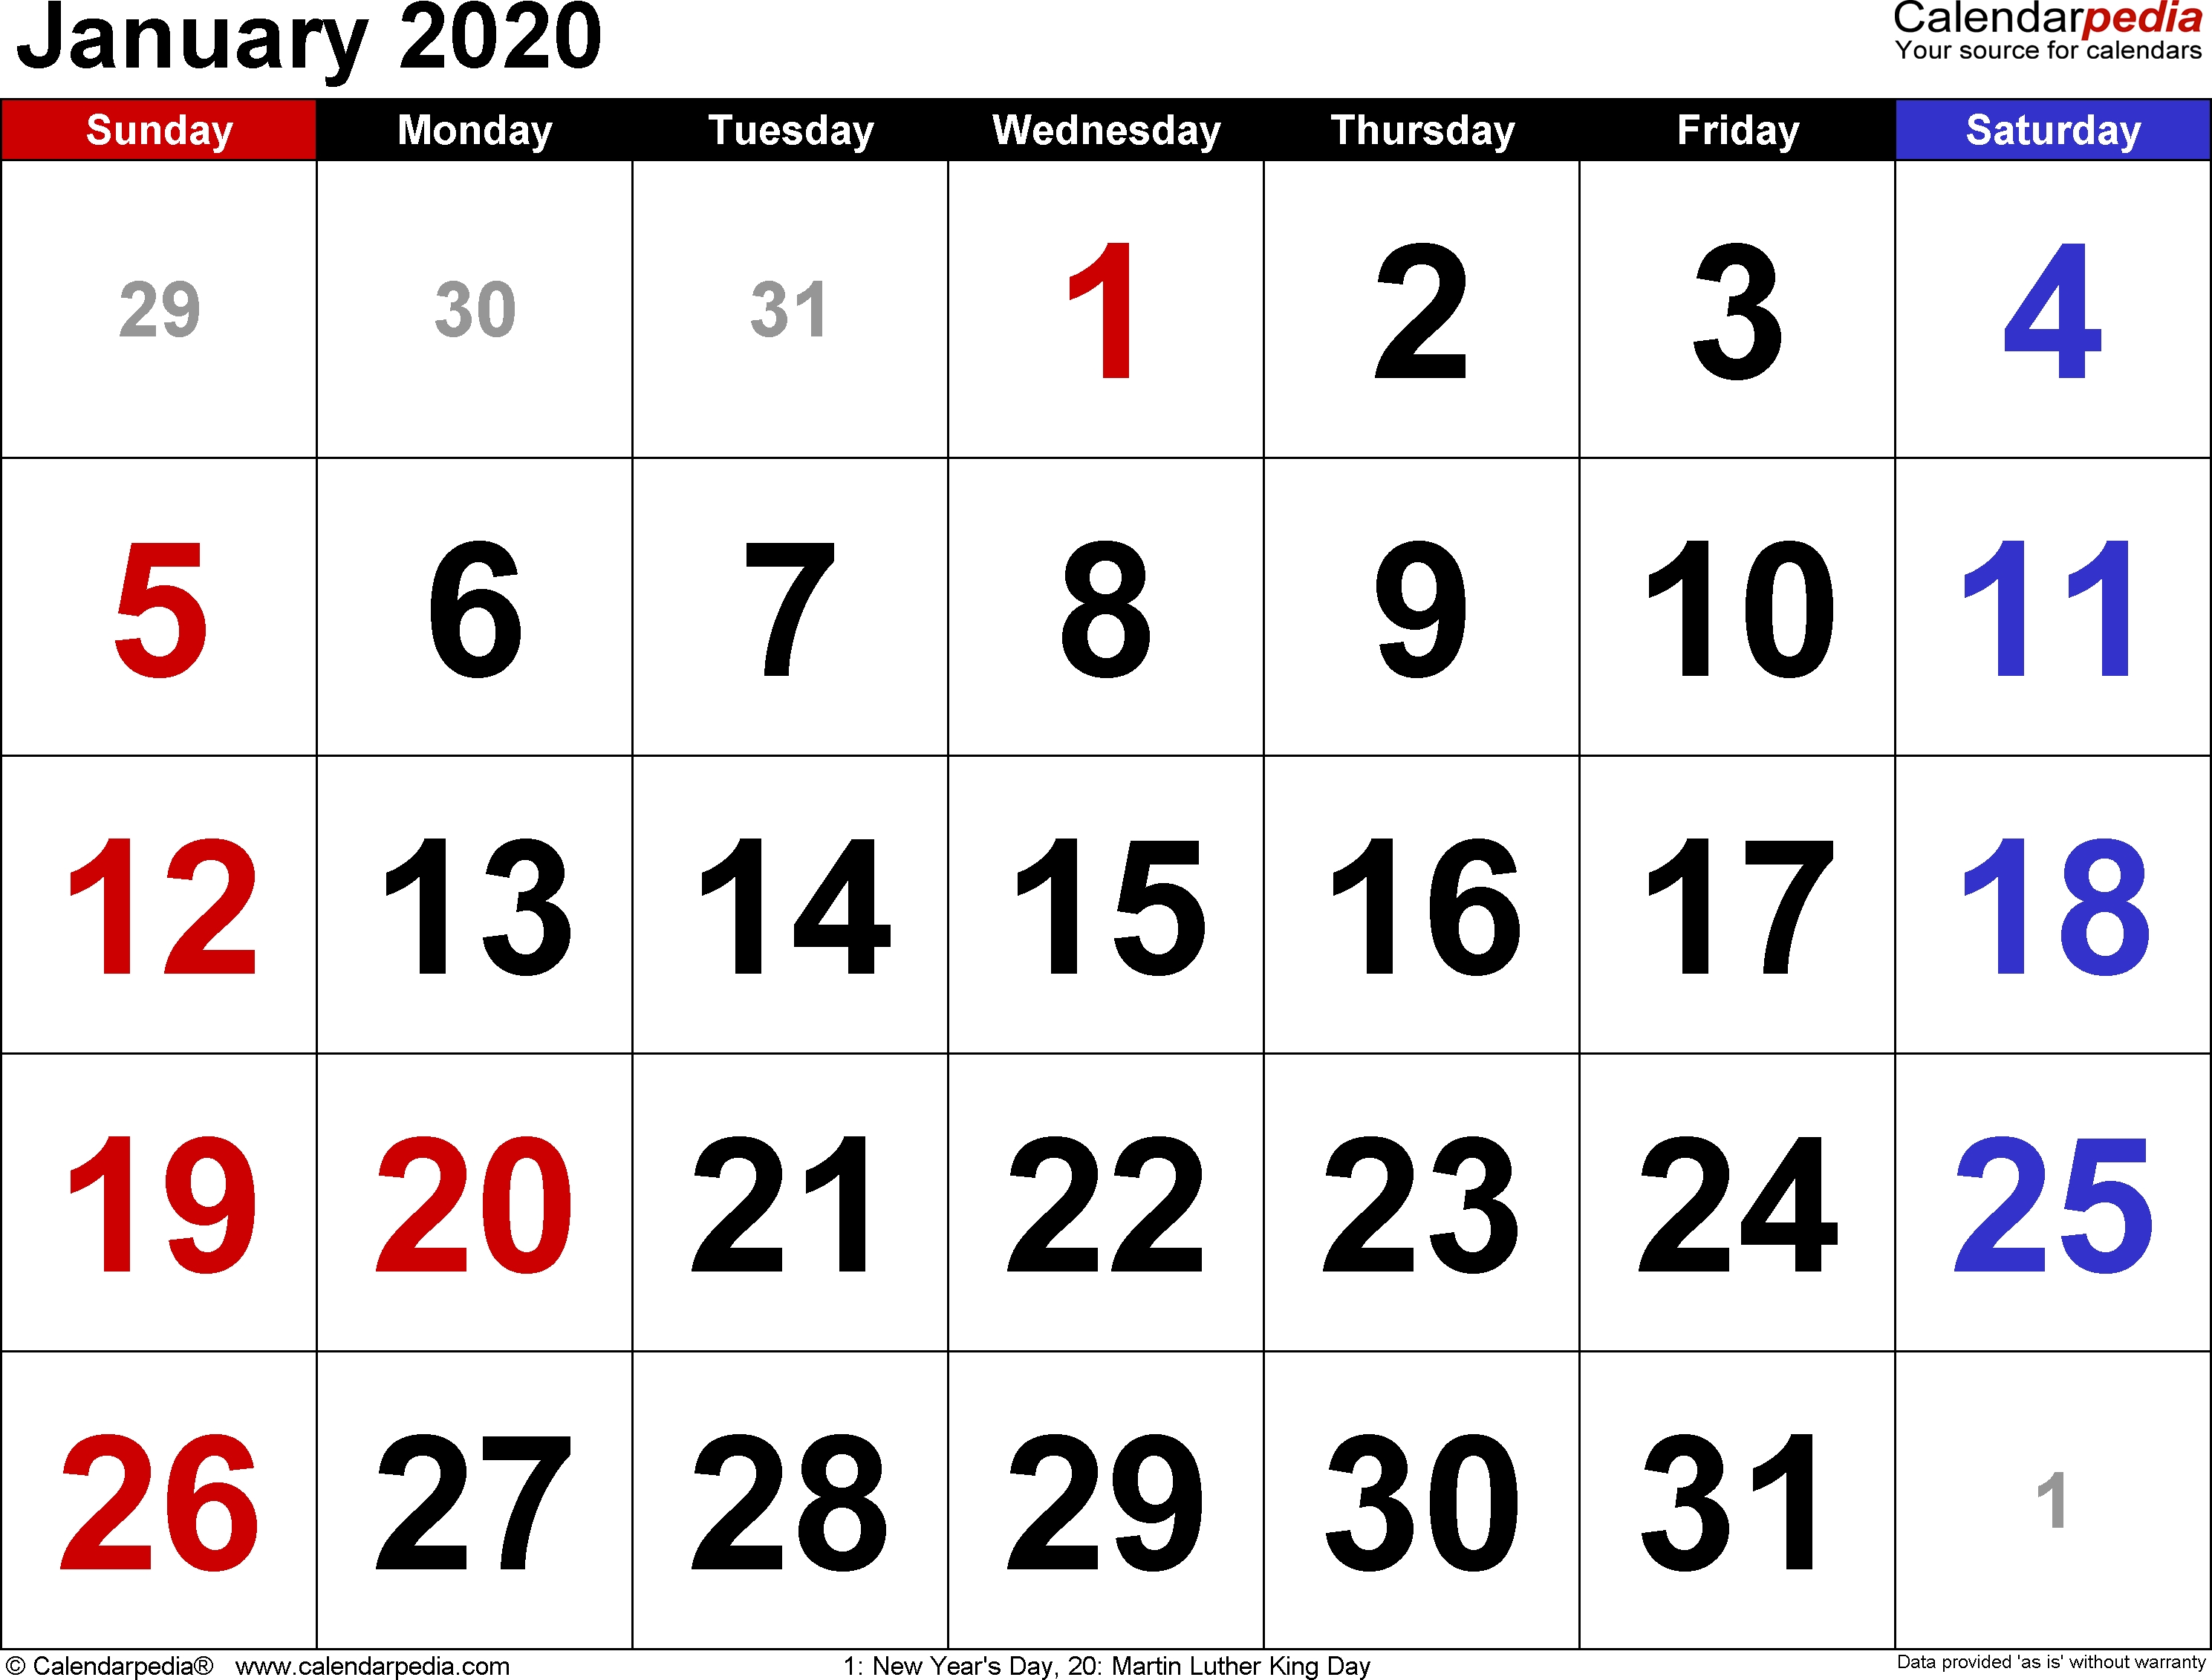 Category: Calendar 97 | Thegioithamdep Tamil Calendar 2020 January